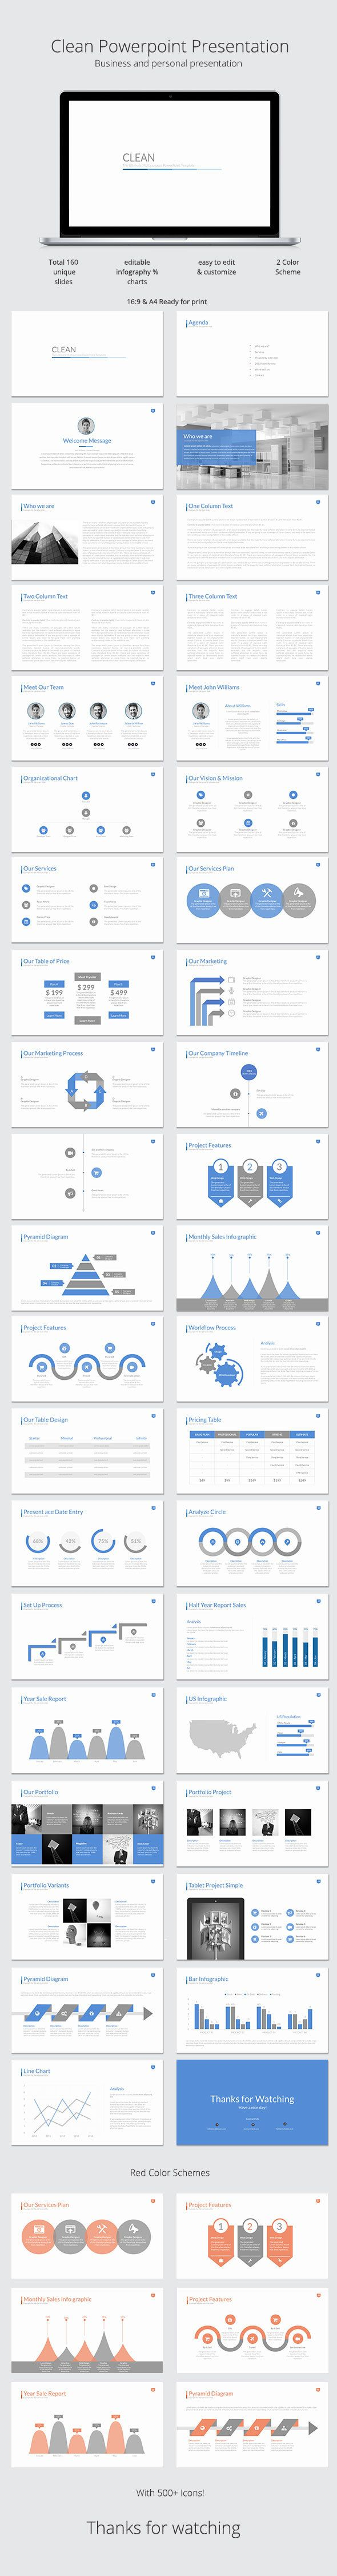 Coolmathgamesus  Scenic  Ideas About Powerpoint Presentations On Pinterest With Foxy Clean Powerpoint Template With Awesome Powerpoint Slides Free Also Welcome Pictures For Powerpoint Presentation In Addition Powerpoint To Word Converter And Food Safety And Sanitation Powerpoint Presentation As Well As Powerpoint For Thesis Defense Additionally Pojer Powerpoints From Pinterestcom With Coolmathgamesus  Foxy  Ideas About Powerpoint Presentations On Pinterest With Awesome Clean Powerpoint Template And Scenic Powerpoint Slides Free Also Welcome Pictures For Powerpoint Presentation In Addition Powerpoint To Word Converter From Pinterestcom